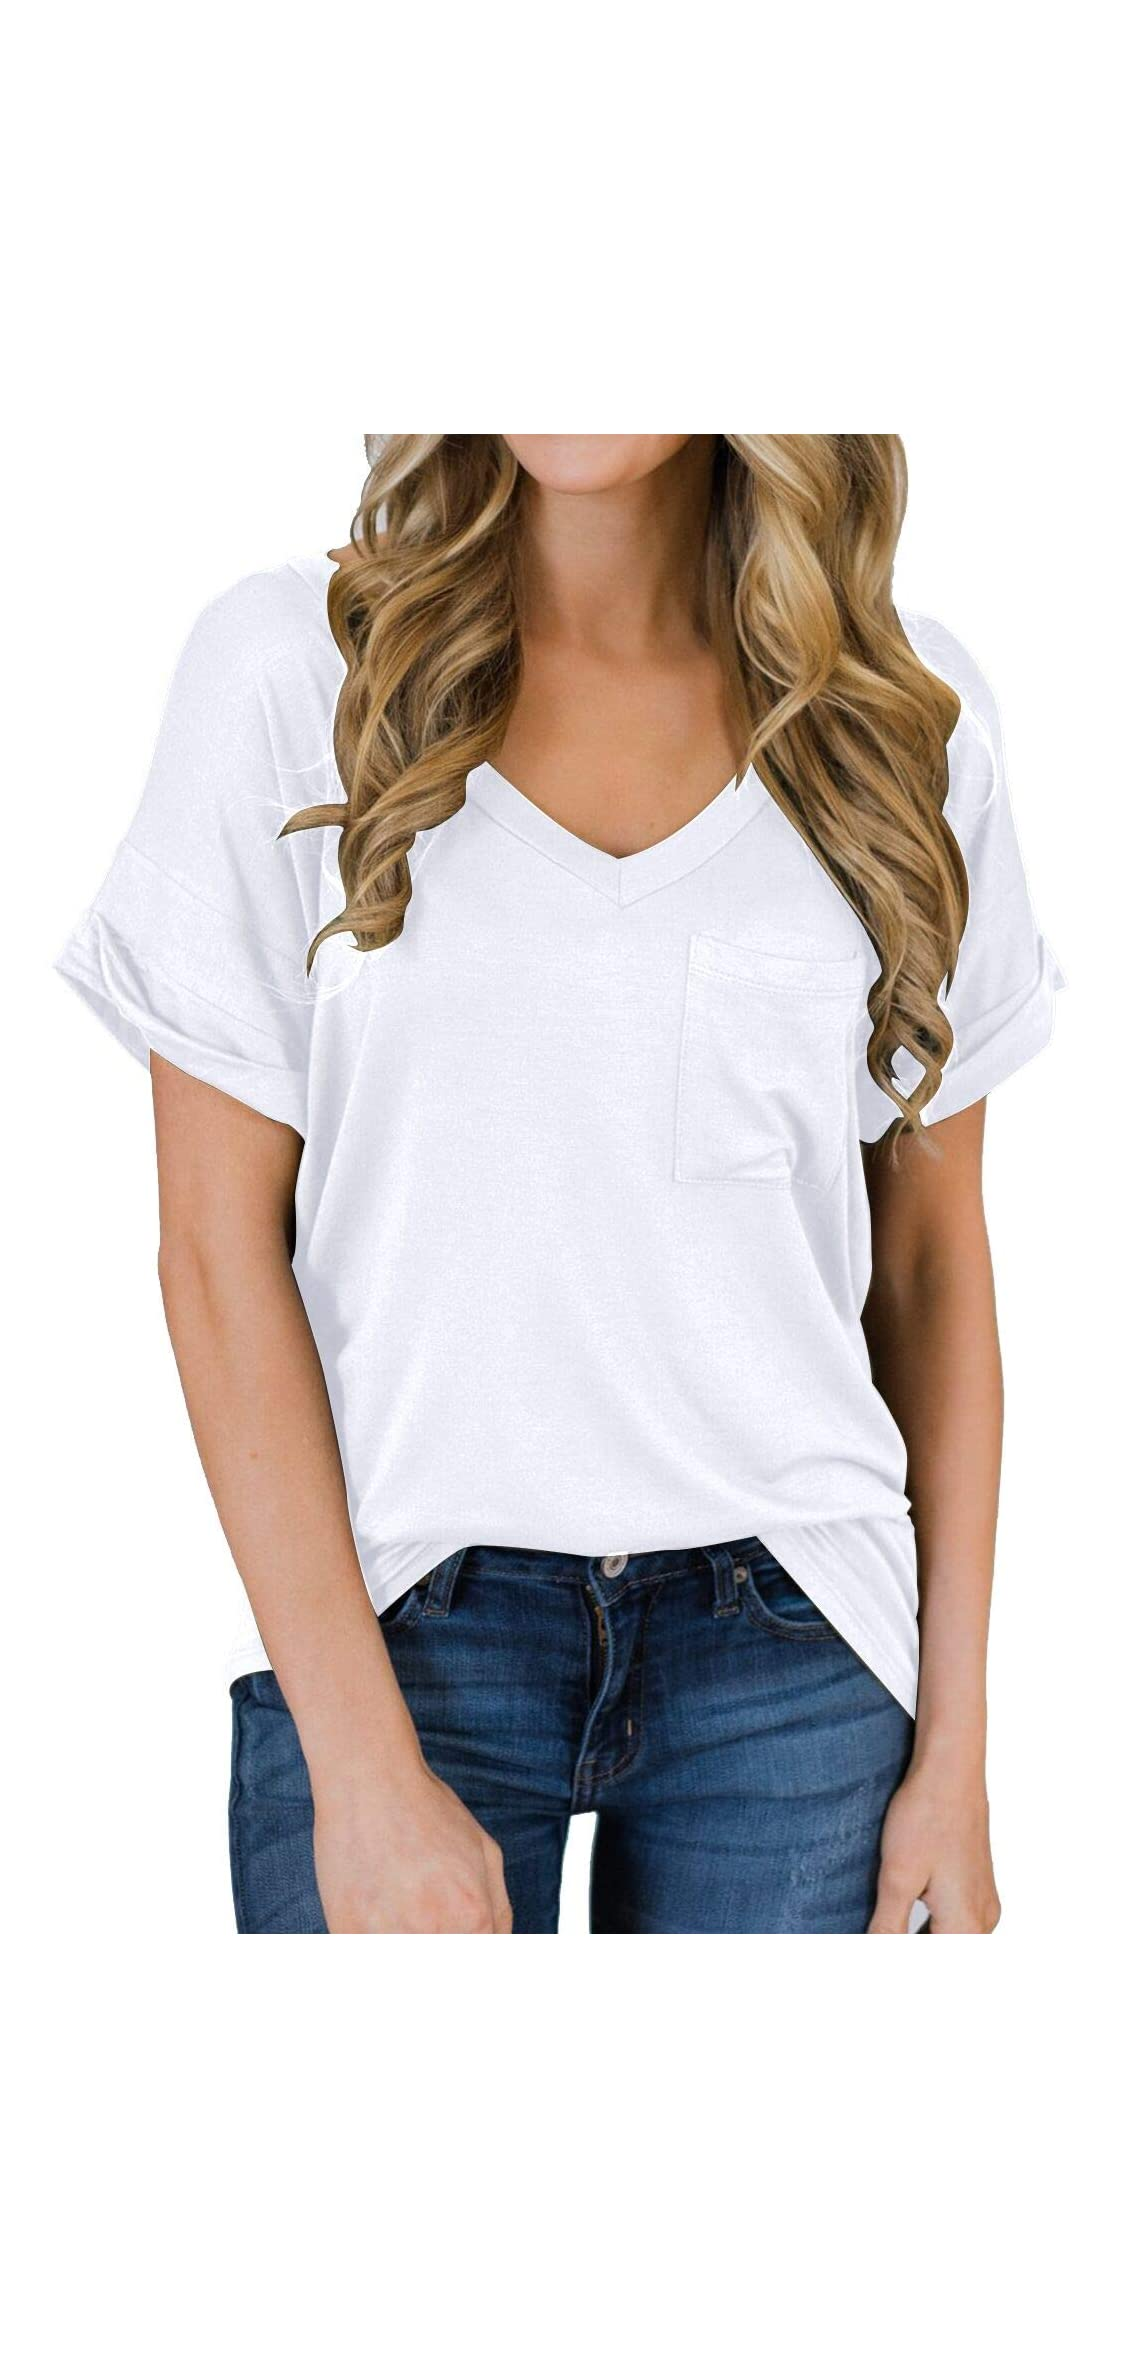 Women's Short Sleeve V-neck Shirts Loose Casual Tee